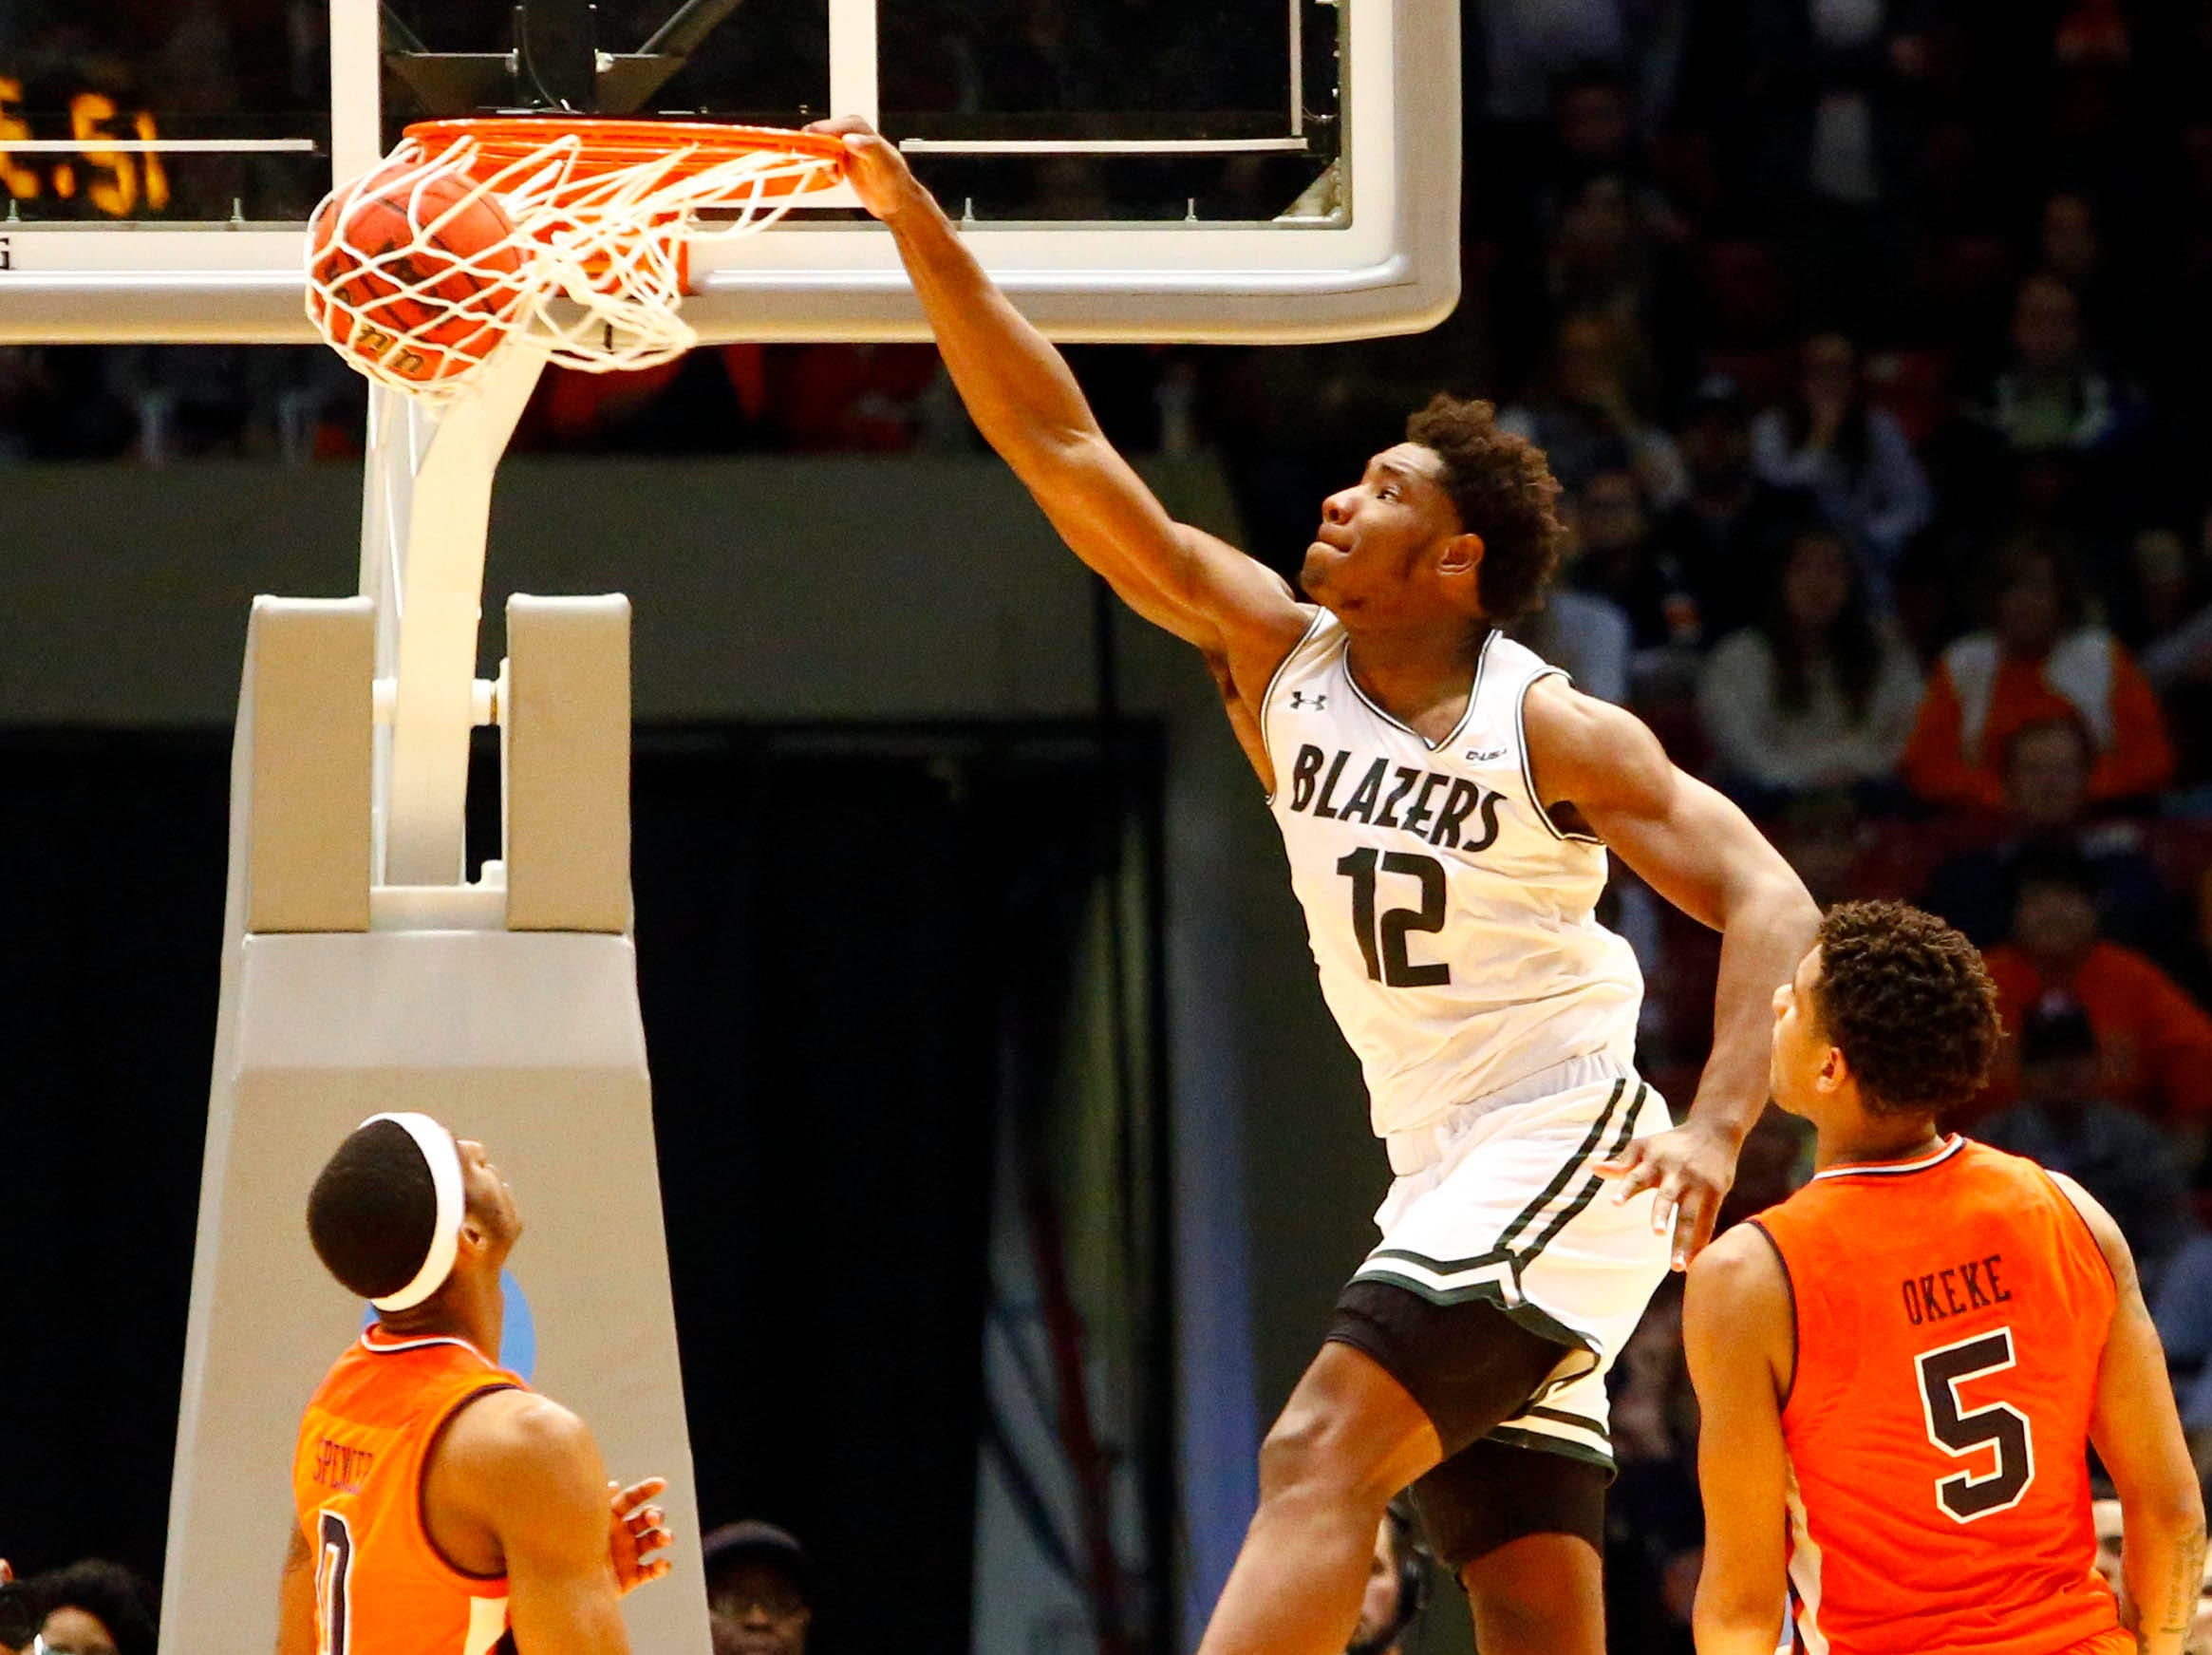 Dec 15, 2018; Birmingham, AL, USA; UAB Blazers forward Will Butler (12) slam dunks the ball during the second half of an NCAA basketball game against the Auburn Tigers at Legacy Arena. Mandatory Credit: Butch Dill-USA TODAY Sports